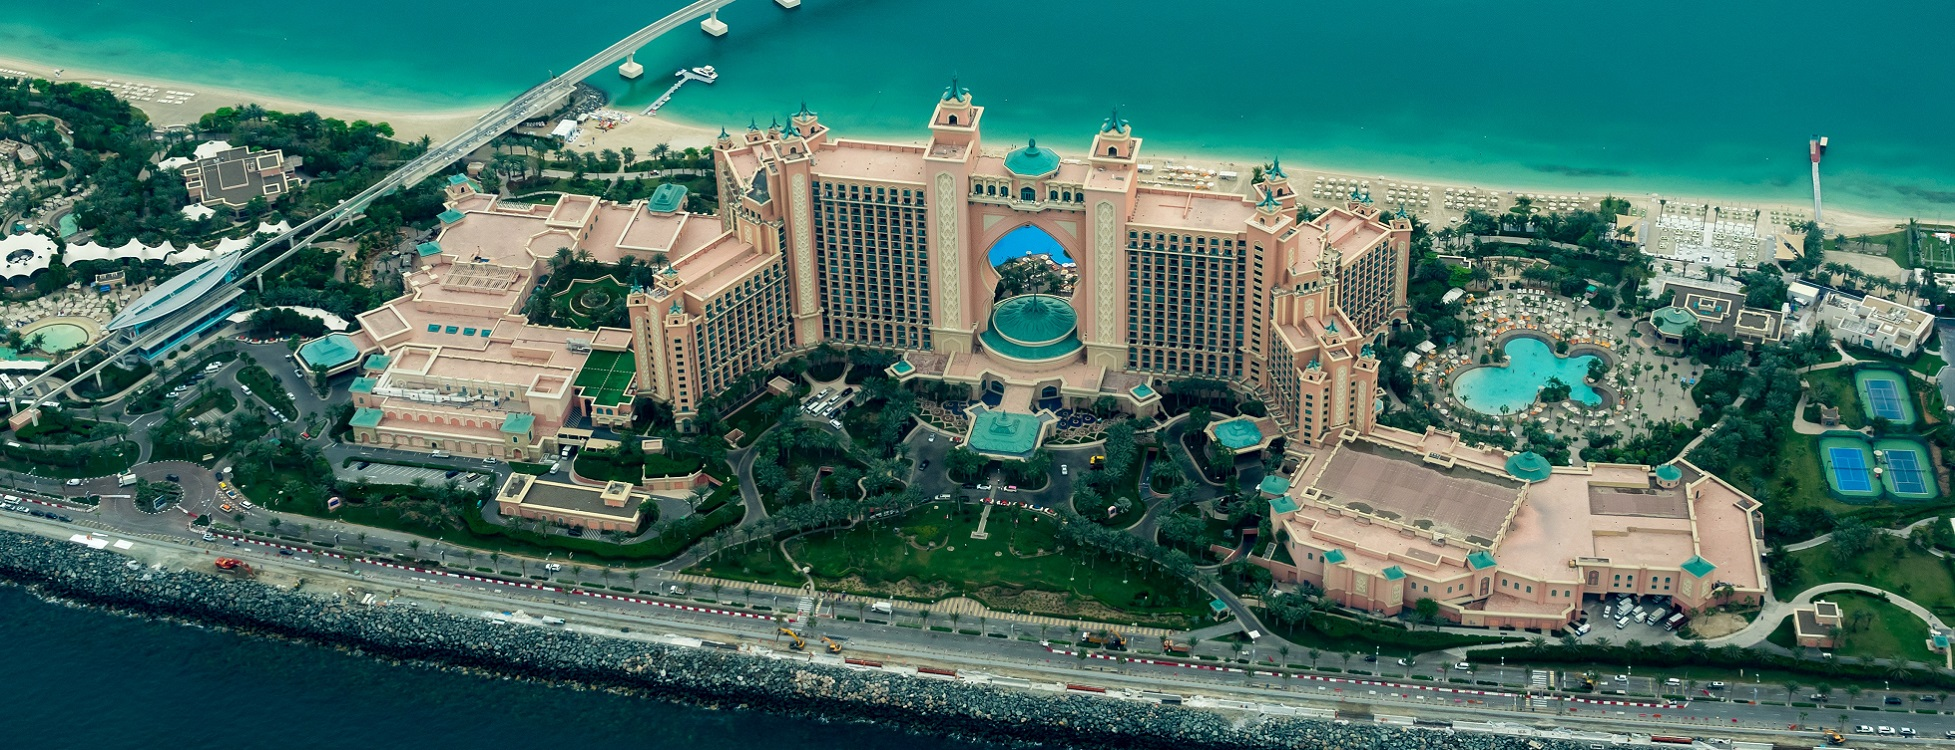 DERTOUR | DUBAI - Atlantis The Palm - Flash sale 51% - rezervari pana la 06.02.2020!